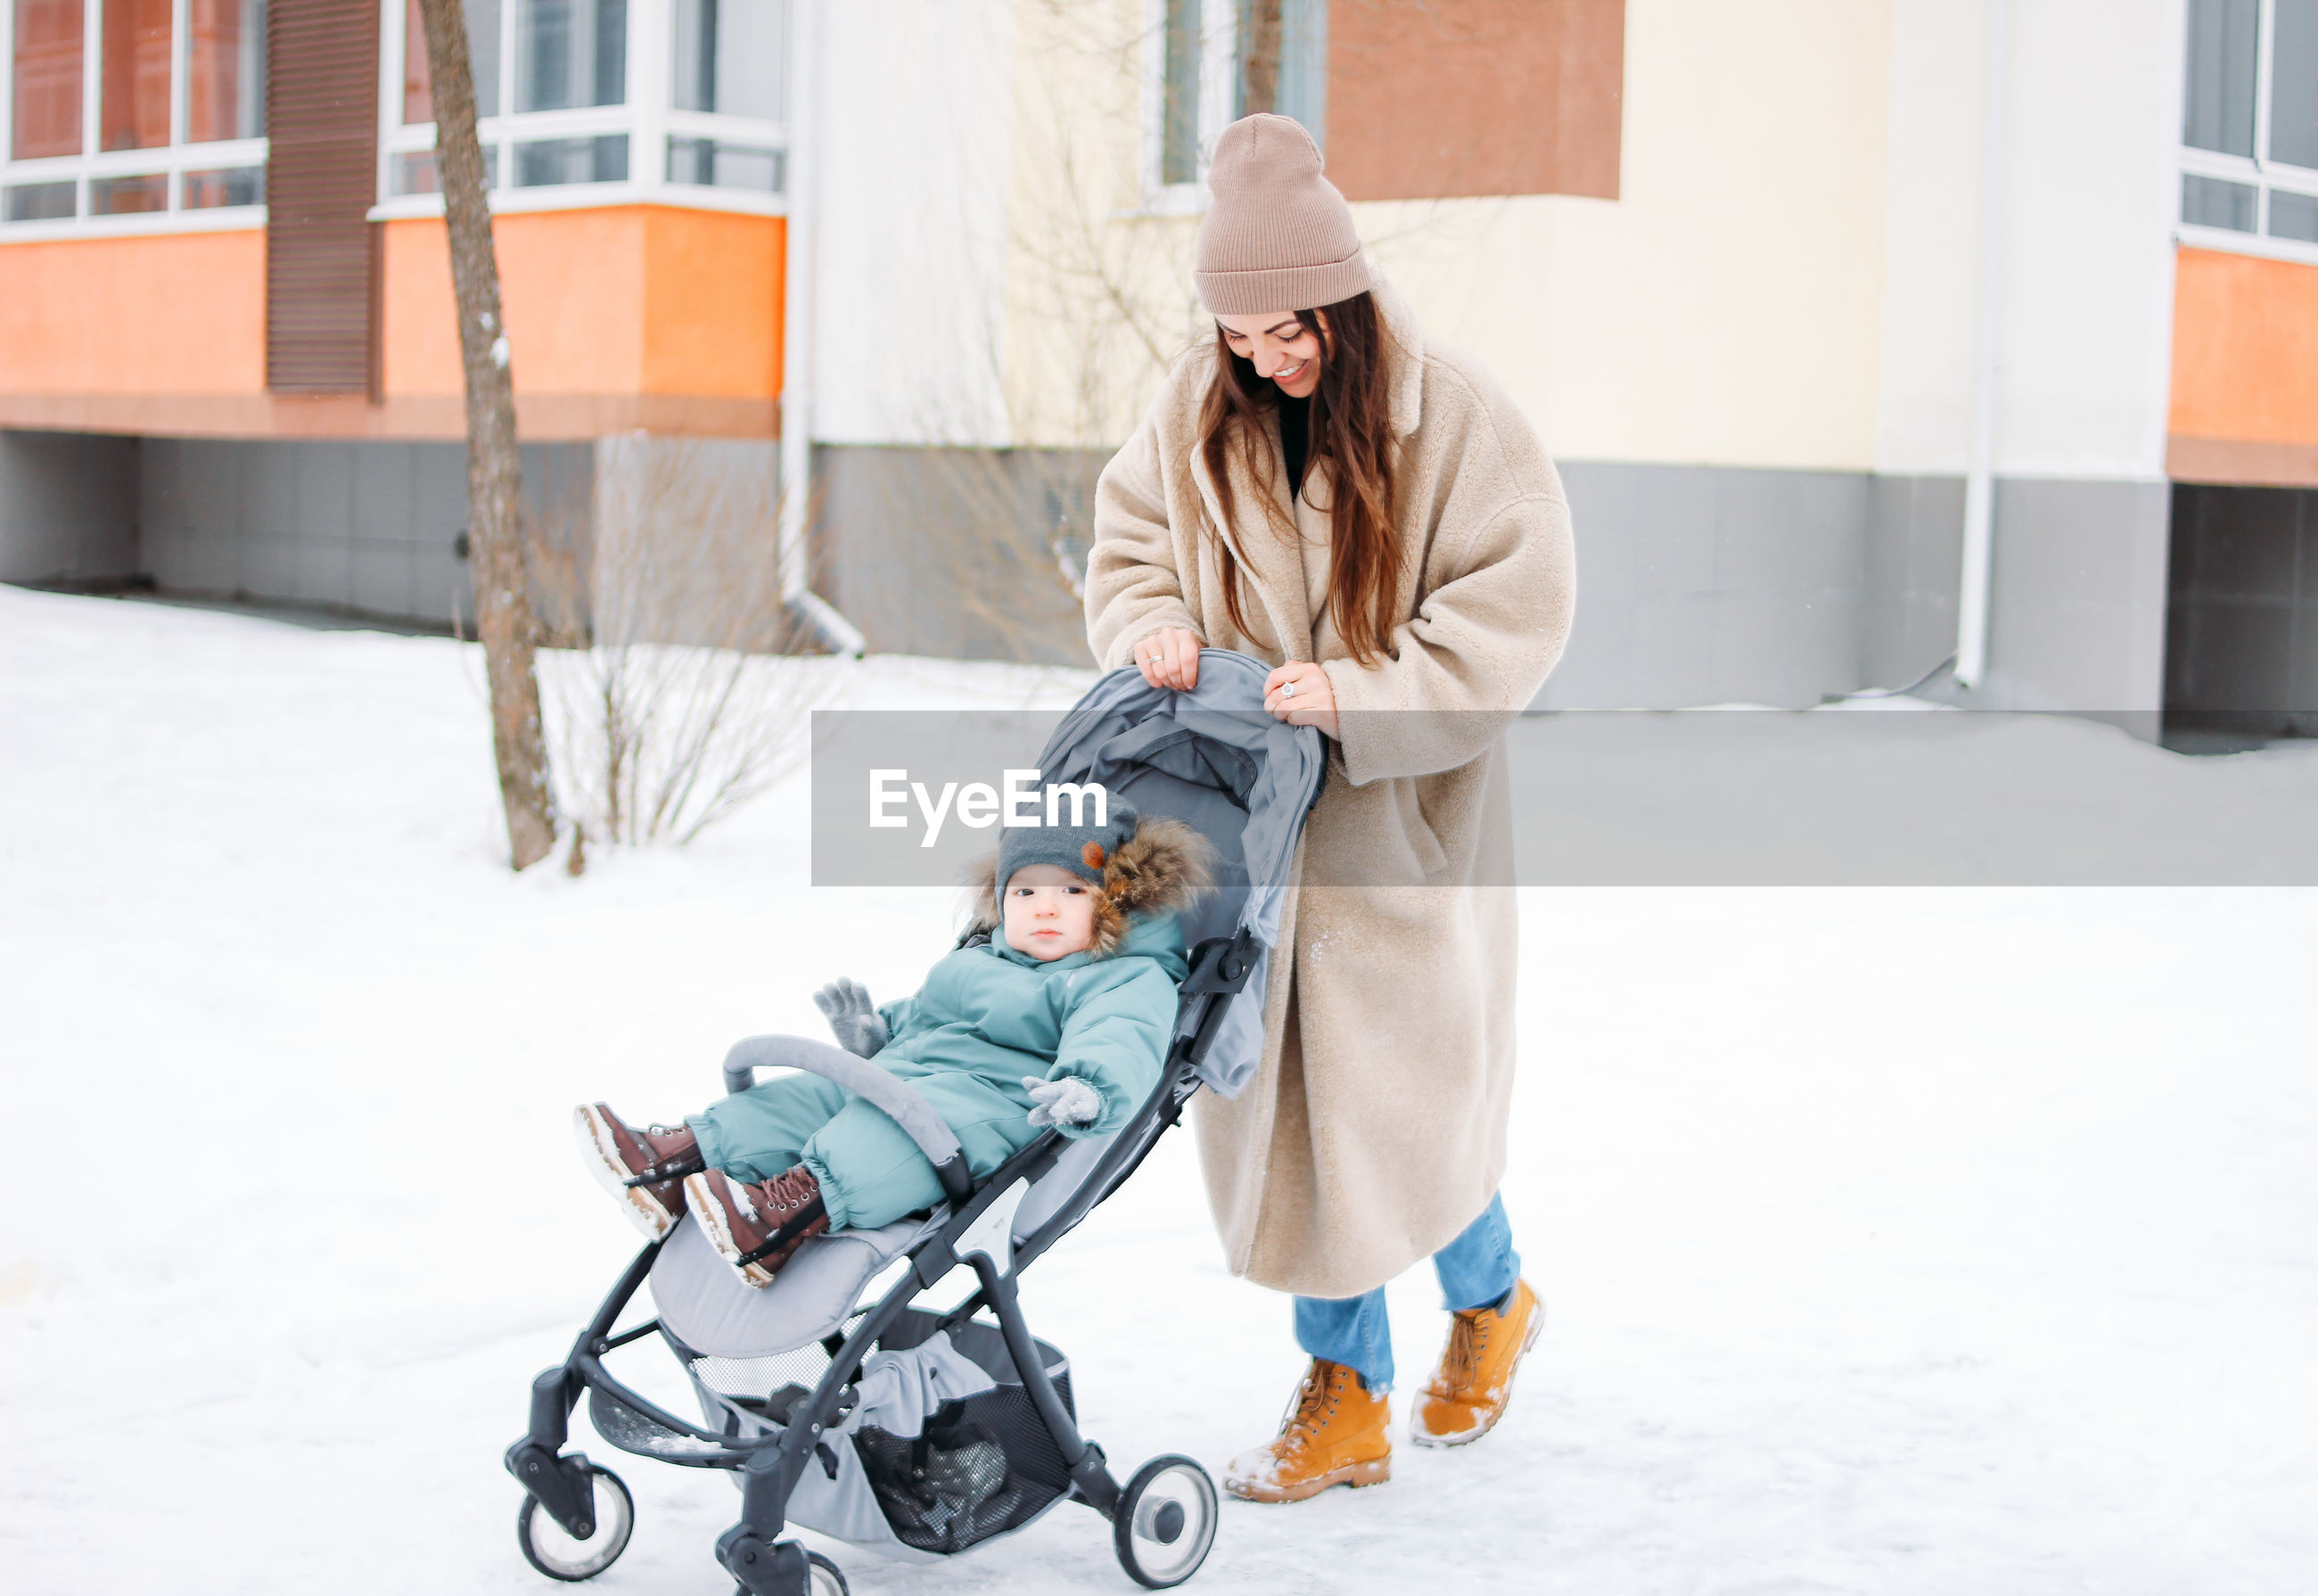 FULL LENGTH OF CHILD IN SNOW DURING SNOWFALL